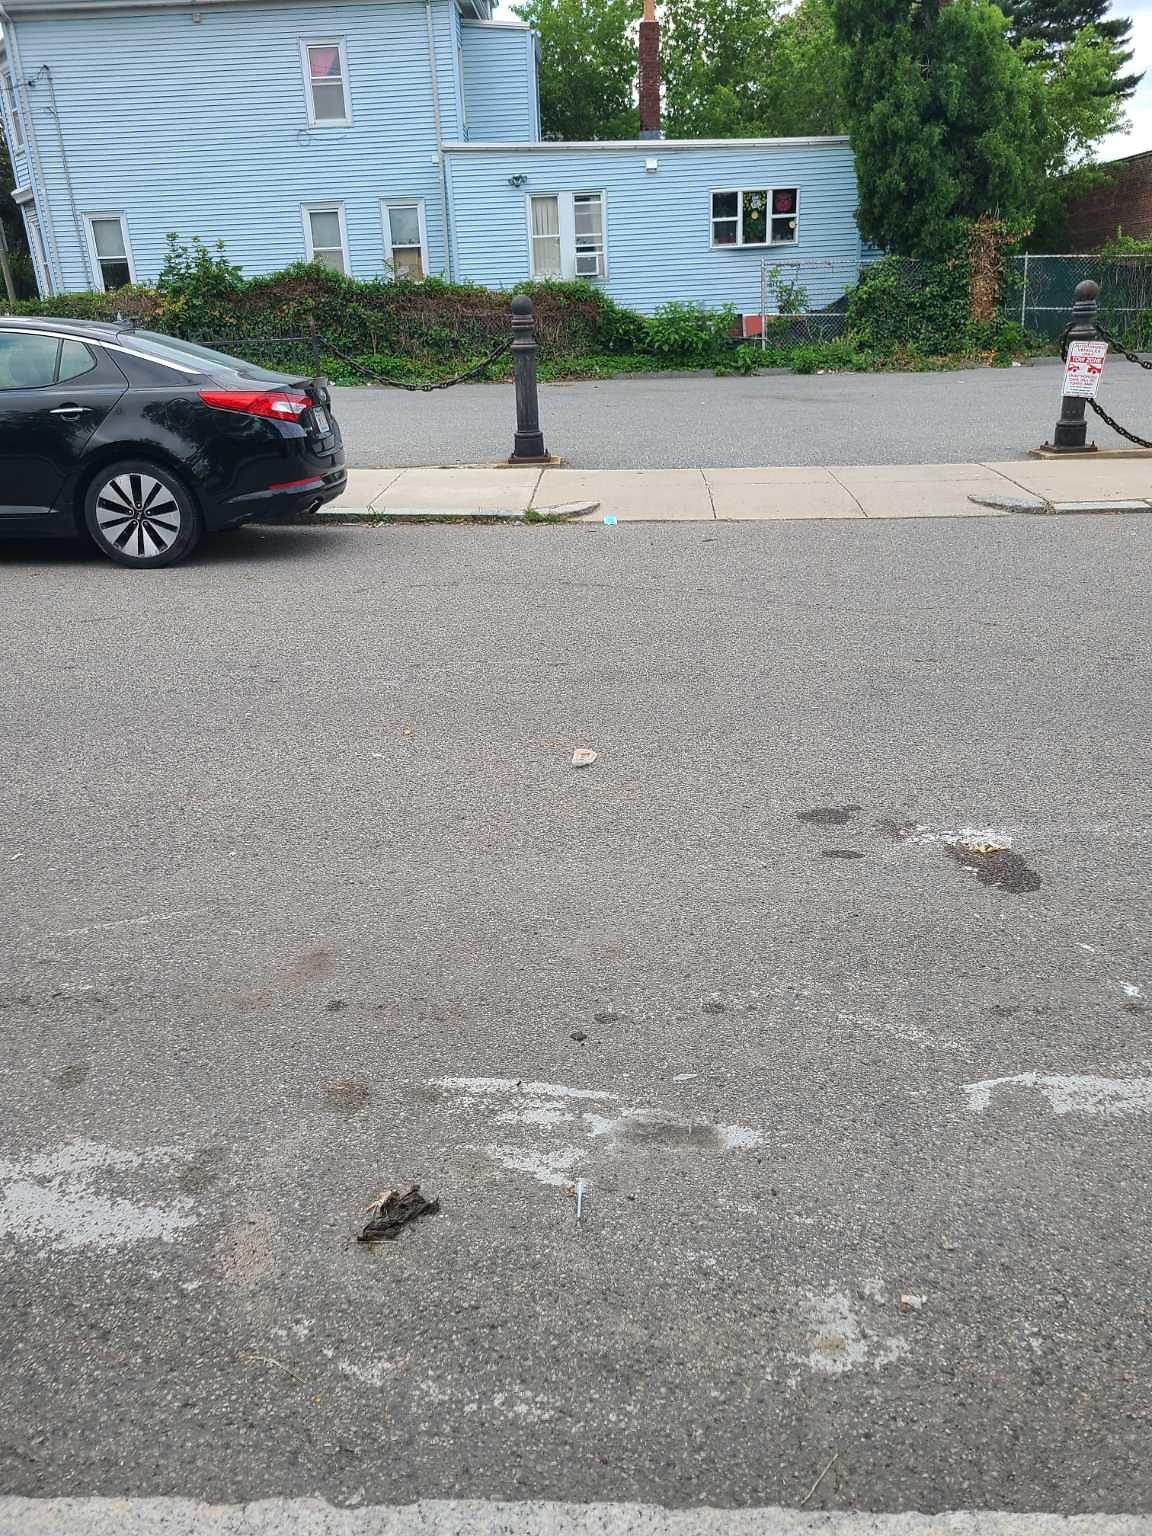 Another needle on Mt Vernon, just after the intersection. Located on street along the sidewalk, a few feet past the tow zone sign